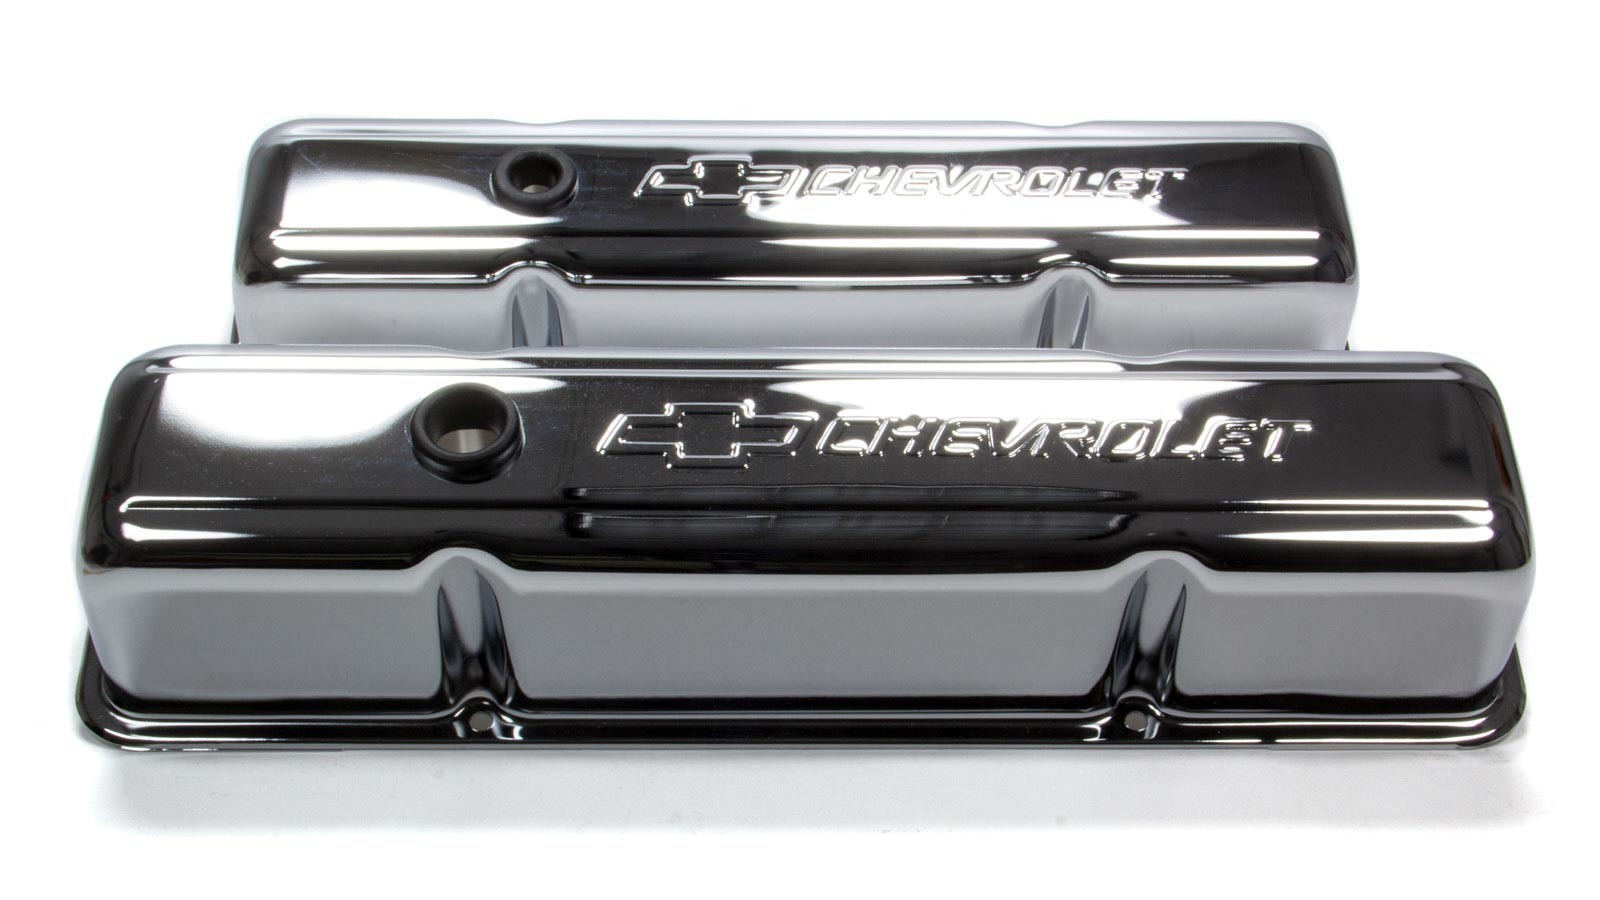 Proform 141-101 Valve Cover, Tall, Breather Hole, Chevrolet Bowtie Logo, Steel, Chrome, Small Block Chevy, Pair